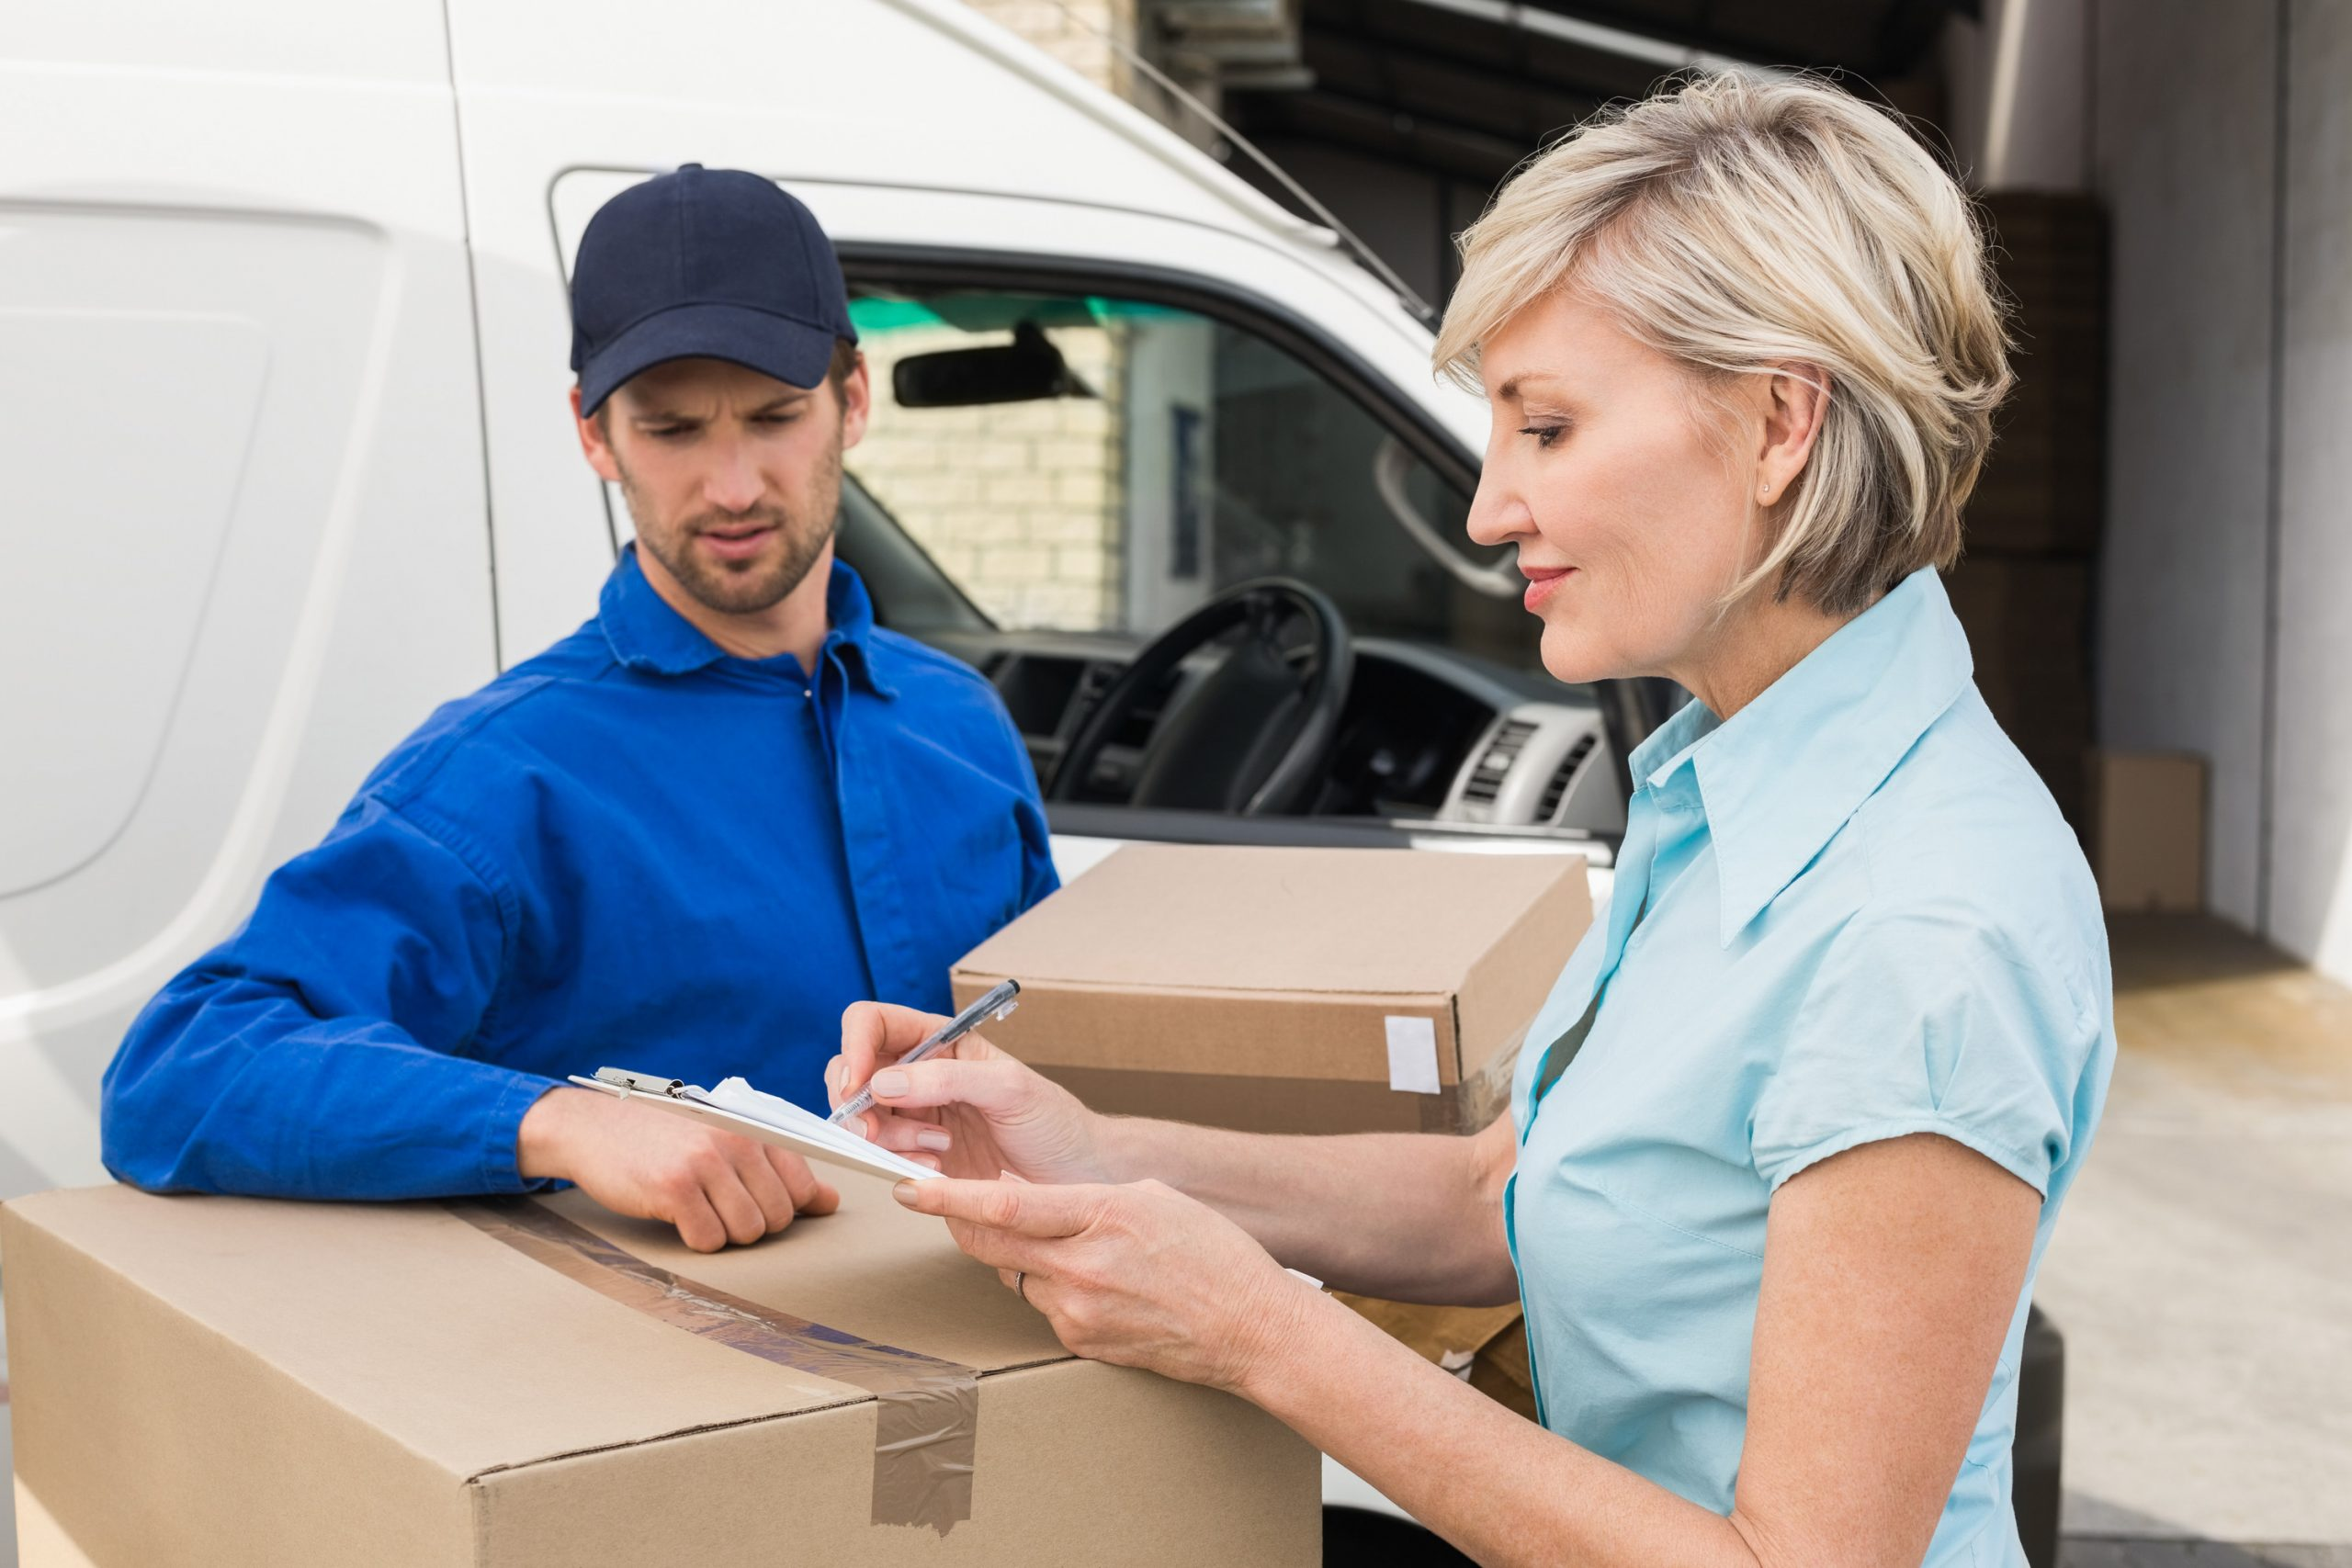 Inventory Accuracy: Top 5 Benefits of Having Accurate Inventory